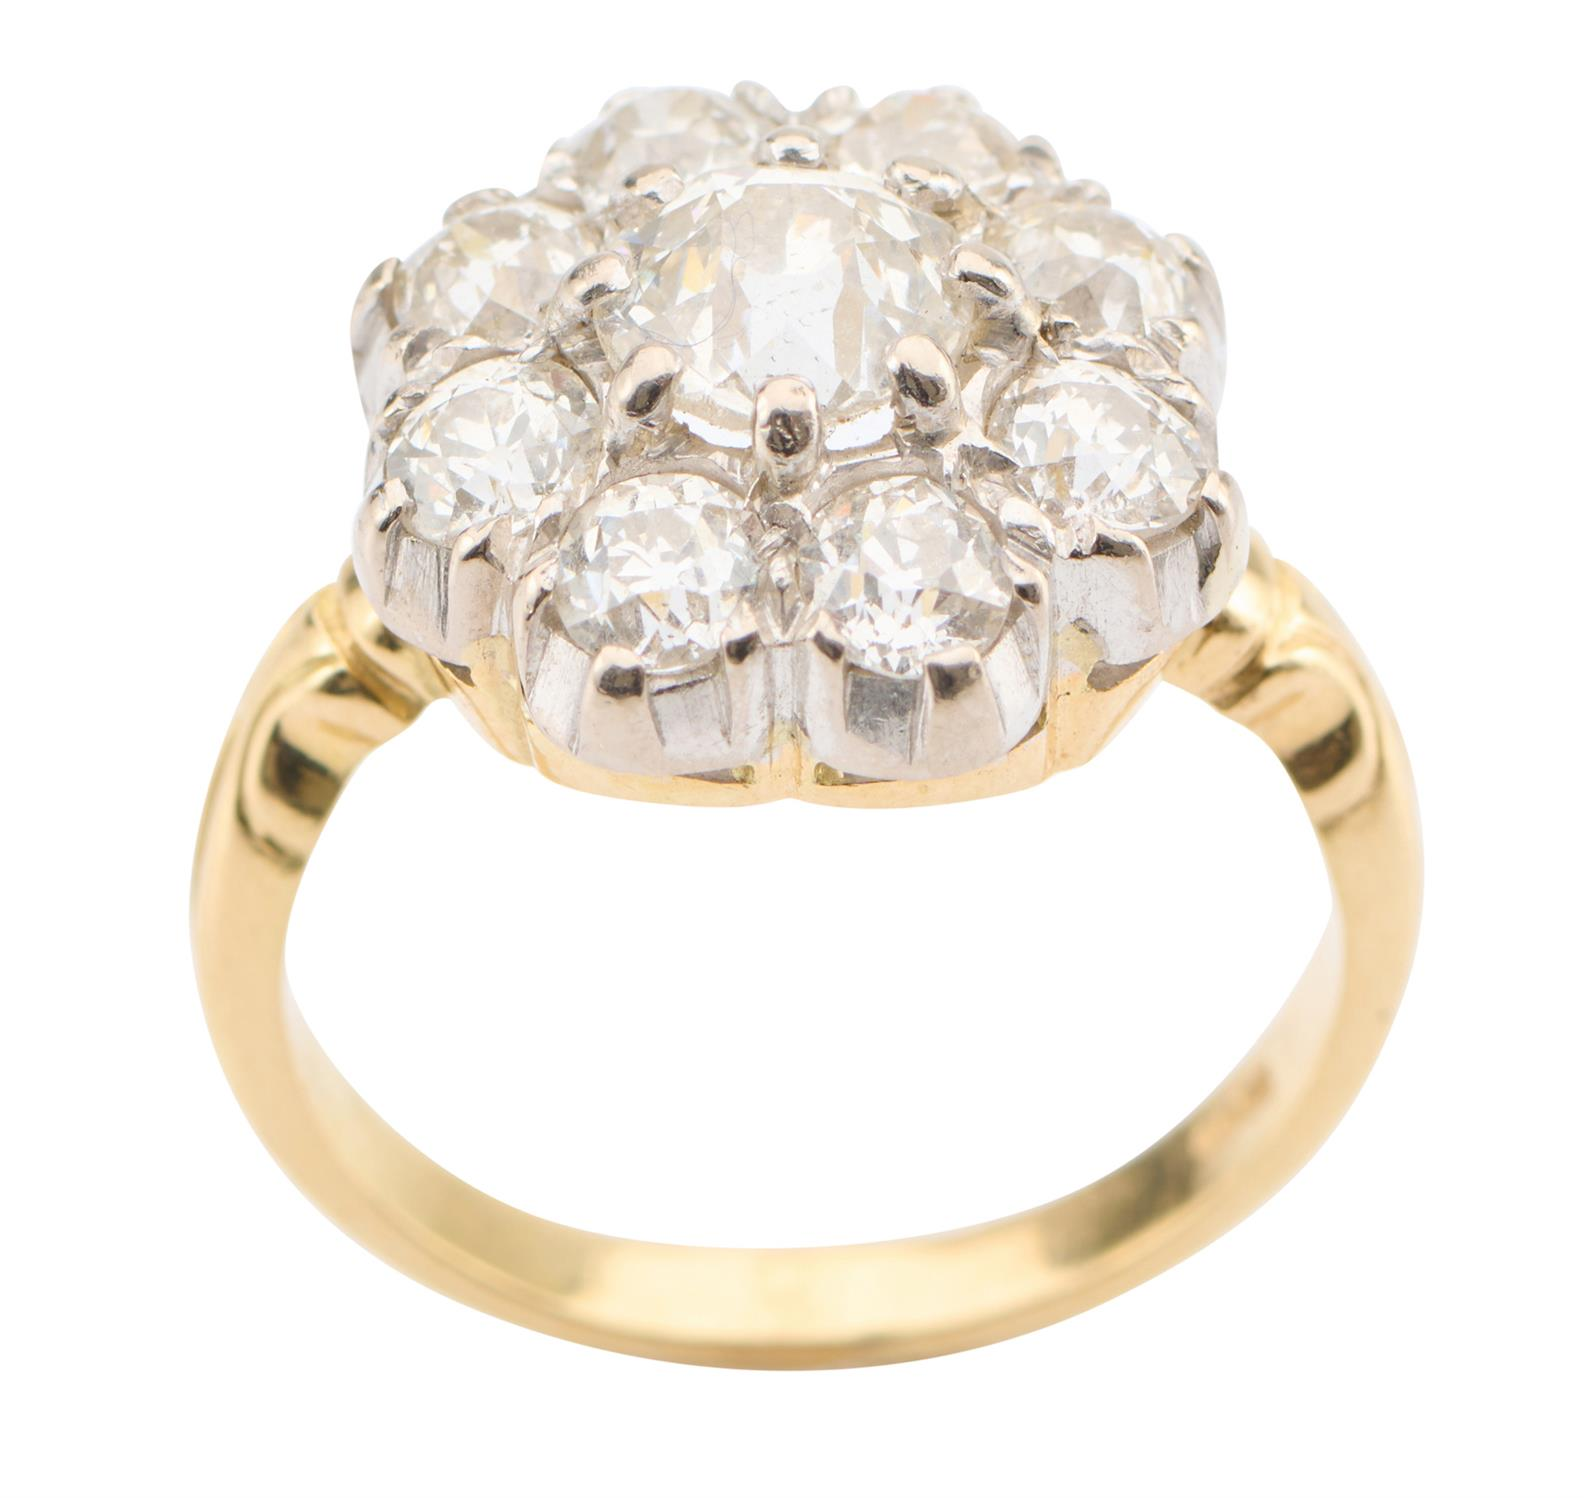 A Private Collection of Vintage and Antique Jewellery